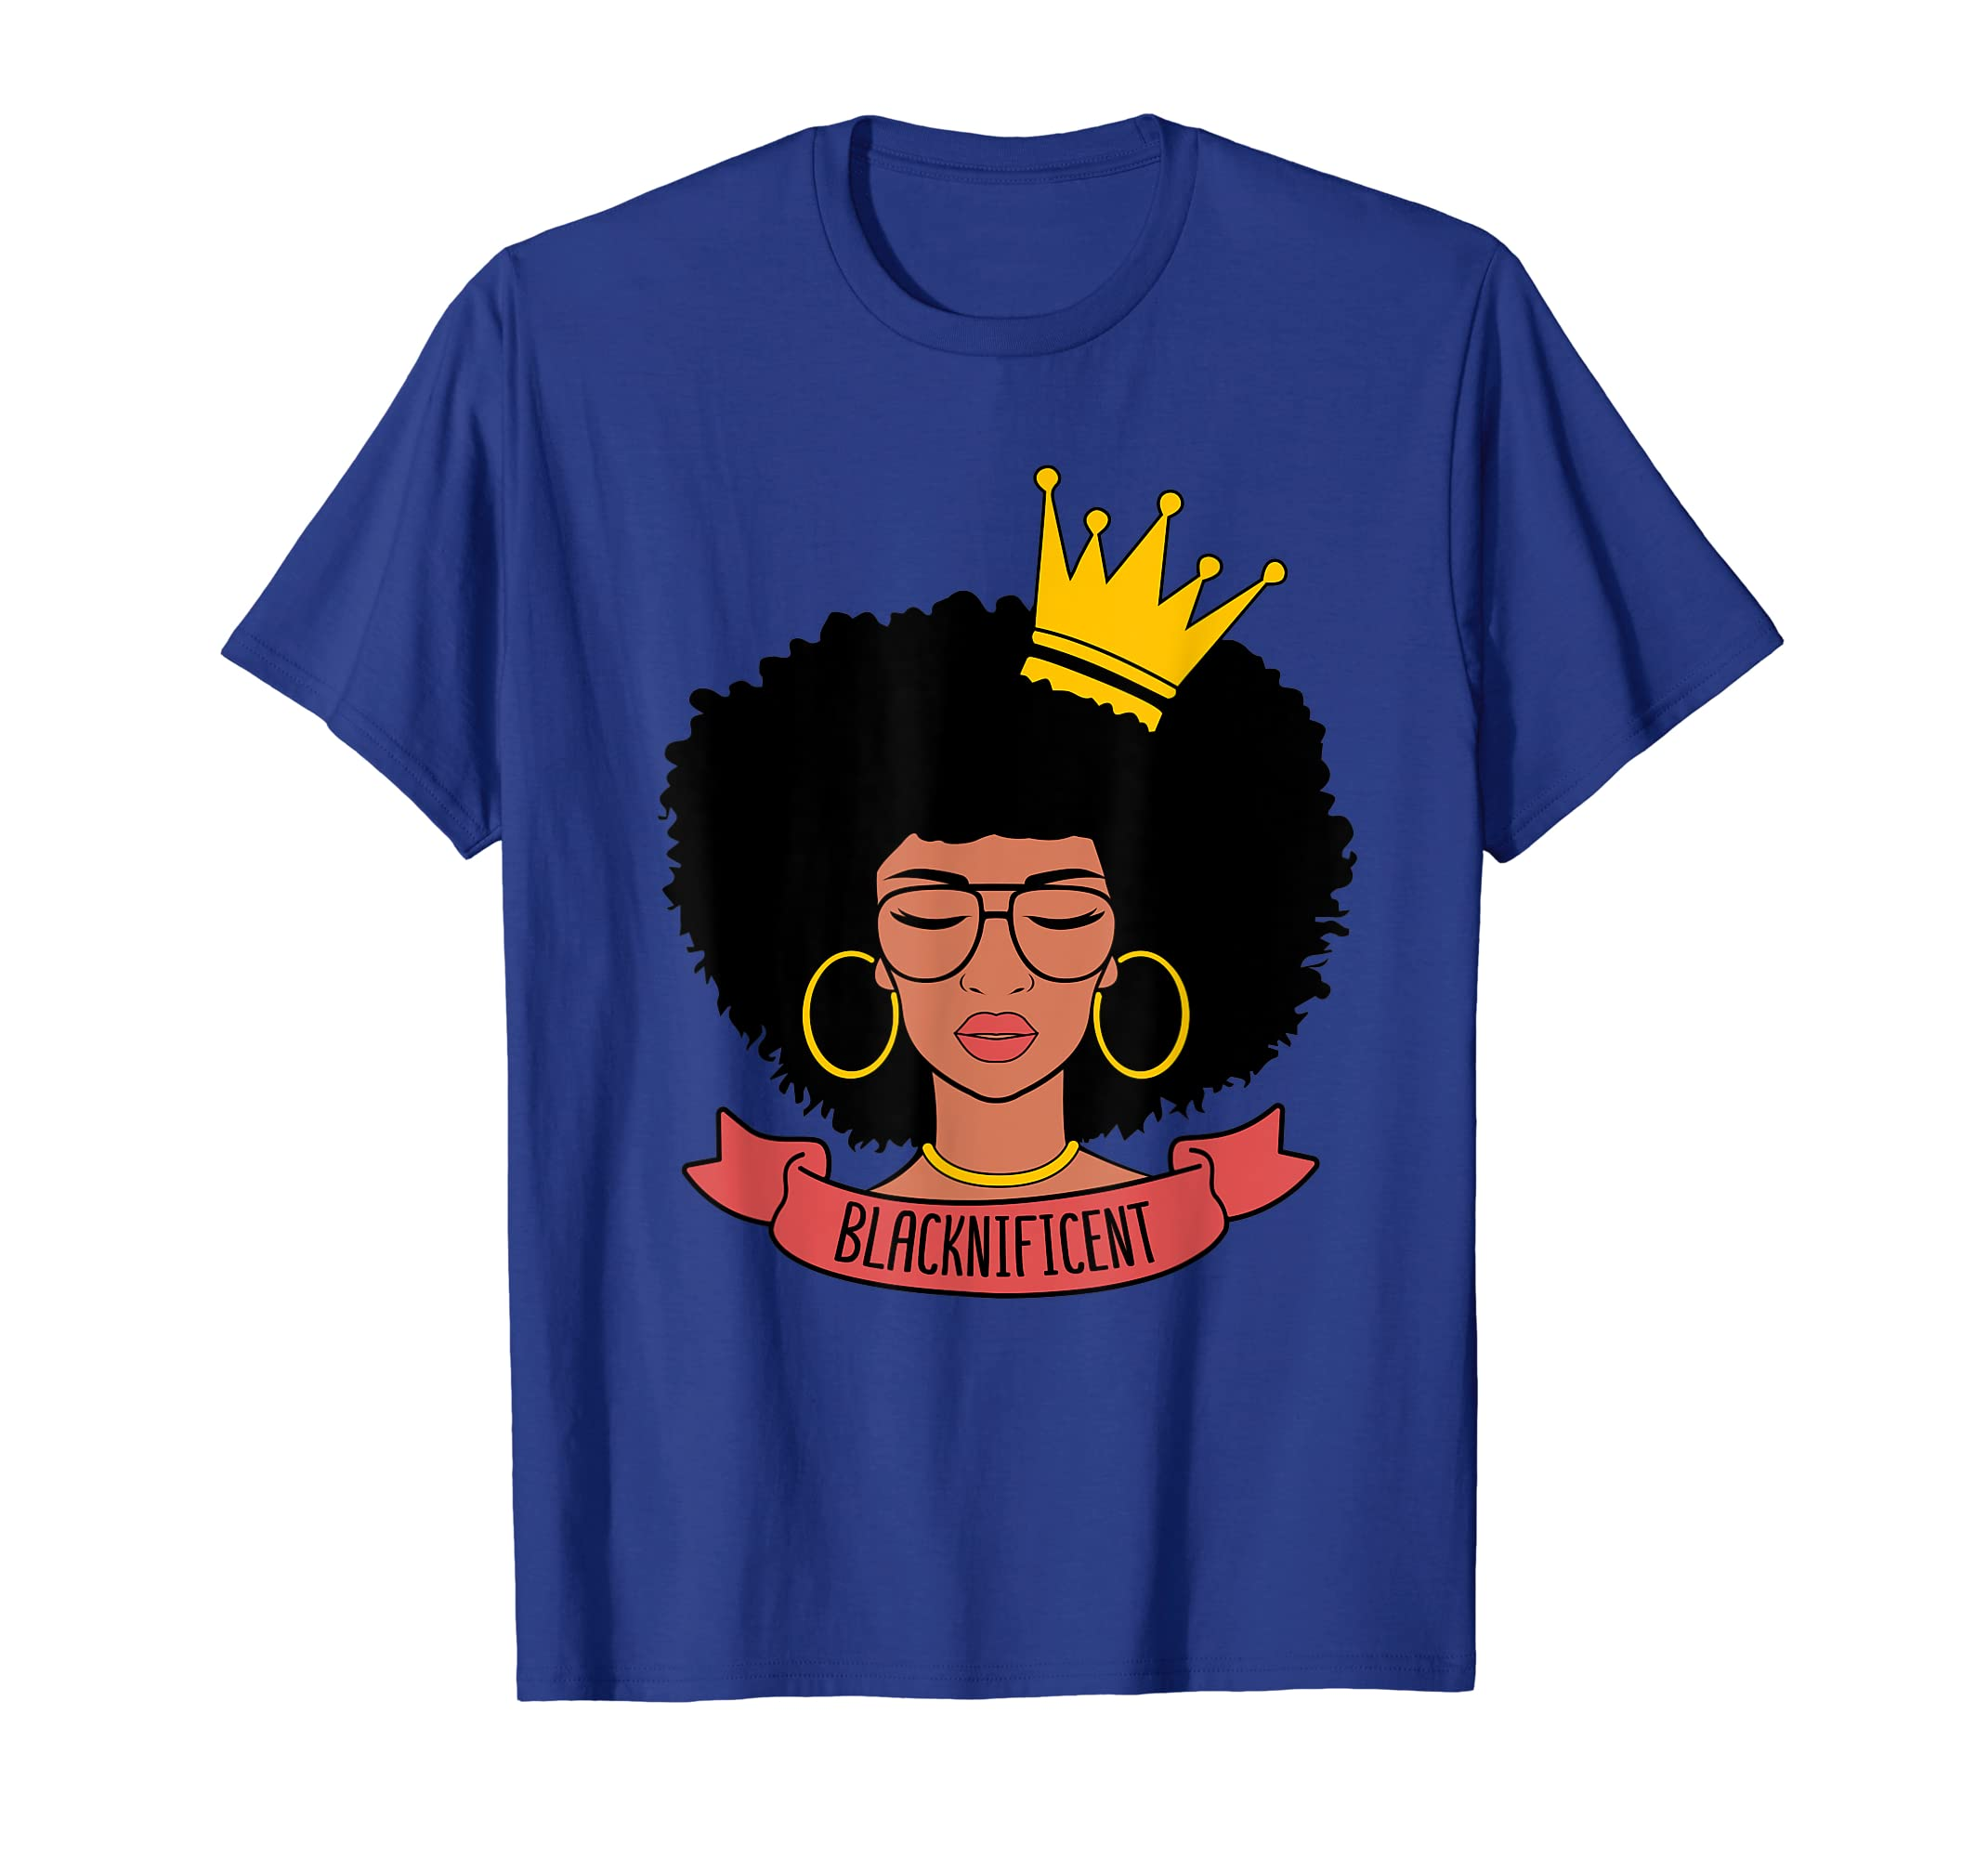 Blacknificient Afro Women Shirt Black History Month Gift-SFL